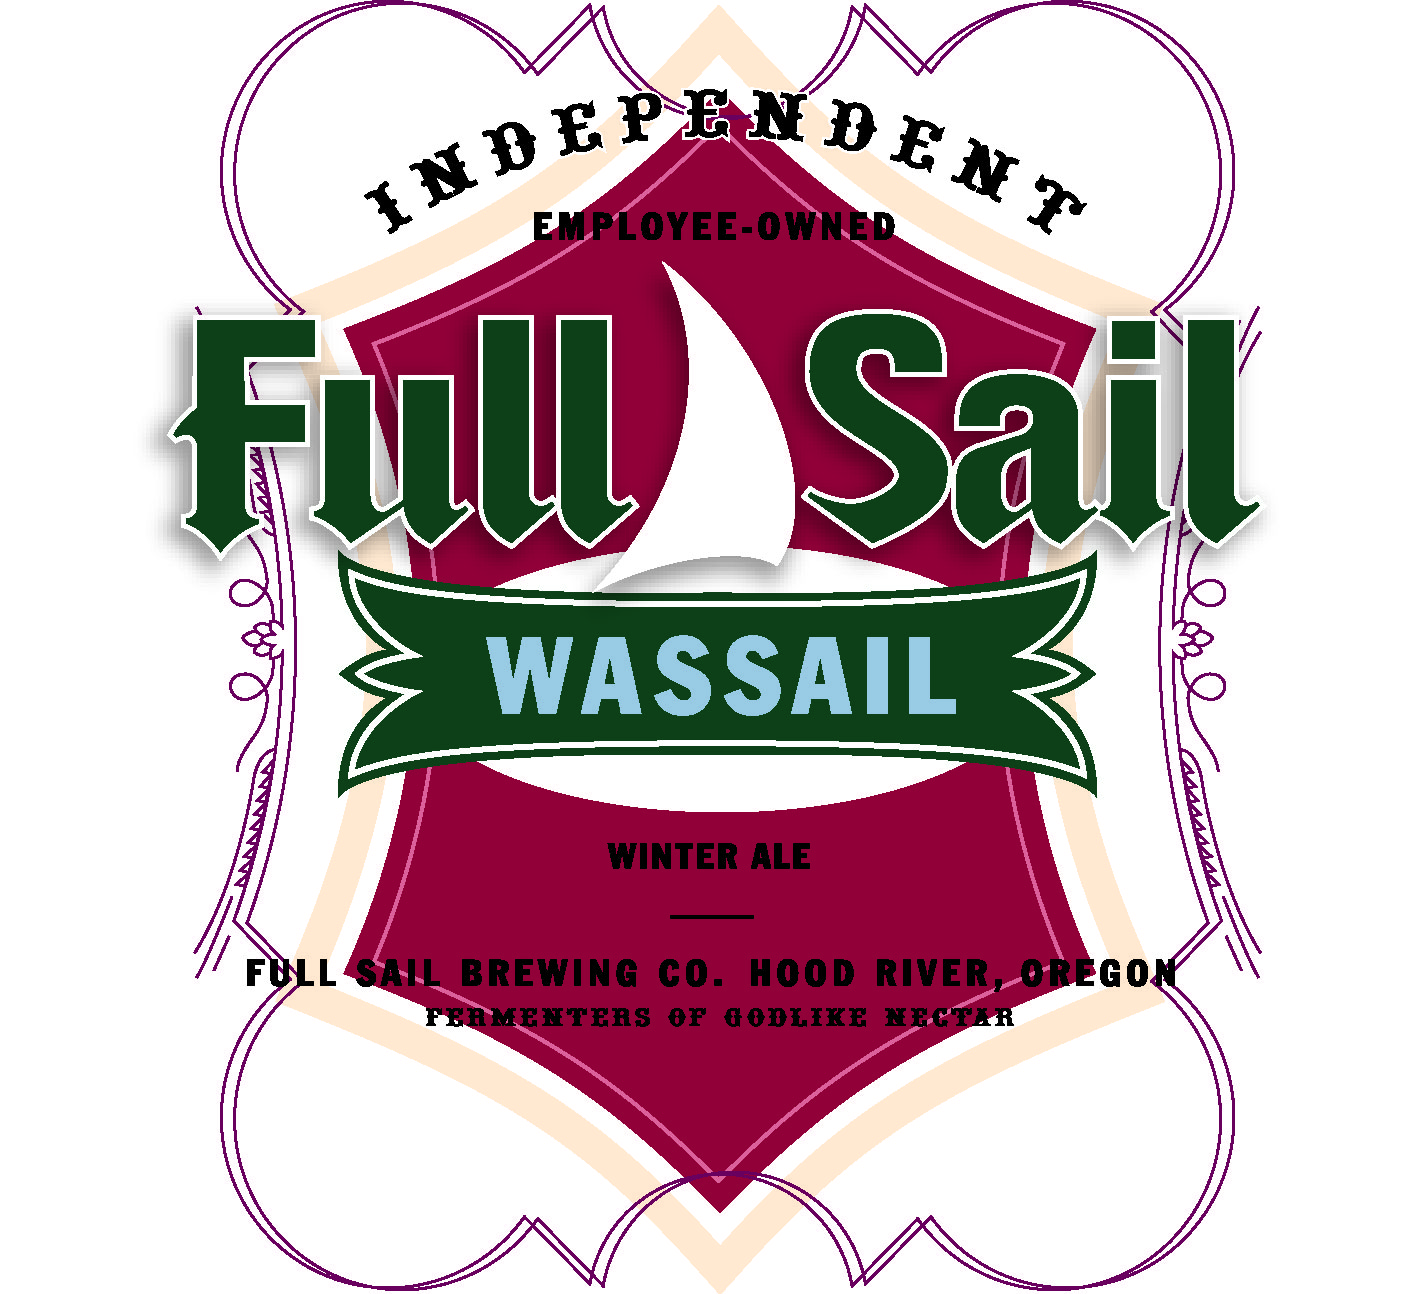 wassail here we go a wassailing wassail winter ale this oh apple tree ...